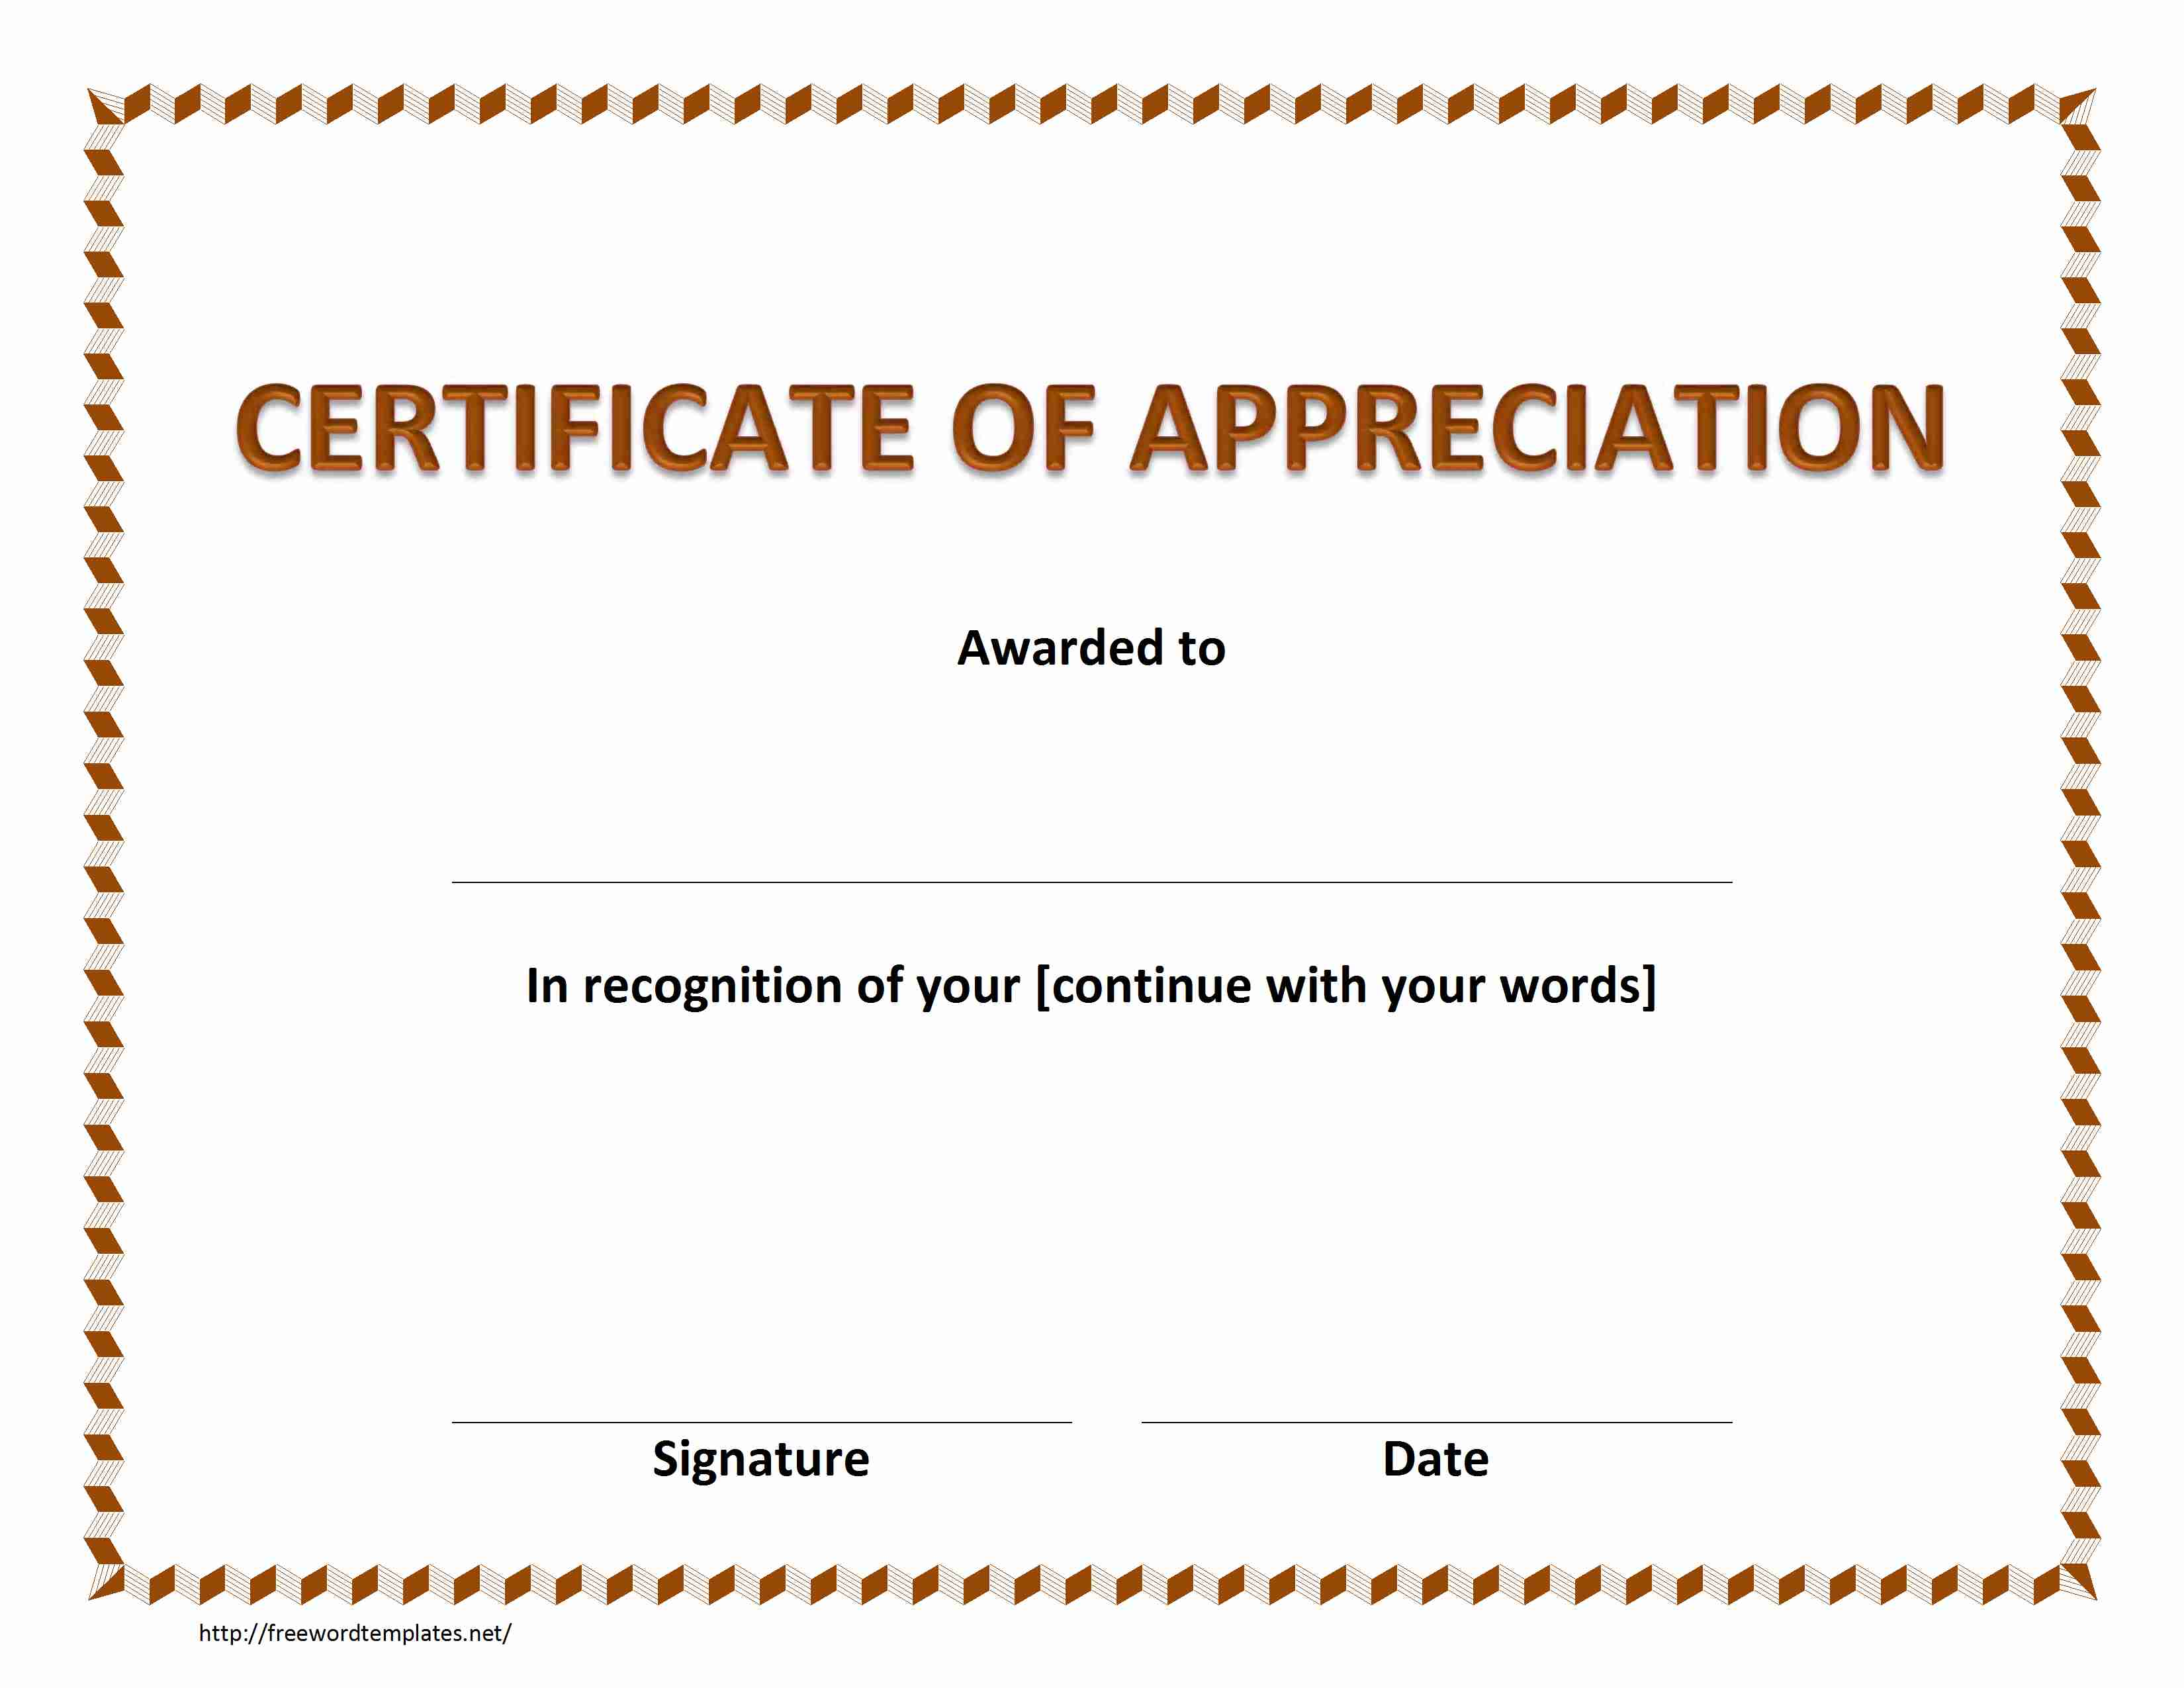 Certificate of appreciation 21g certificate of appreciation template for word yadclub Images